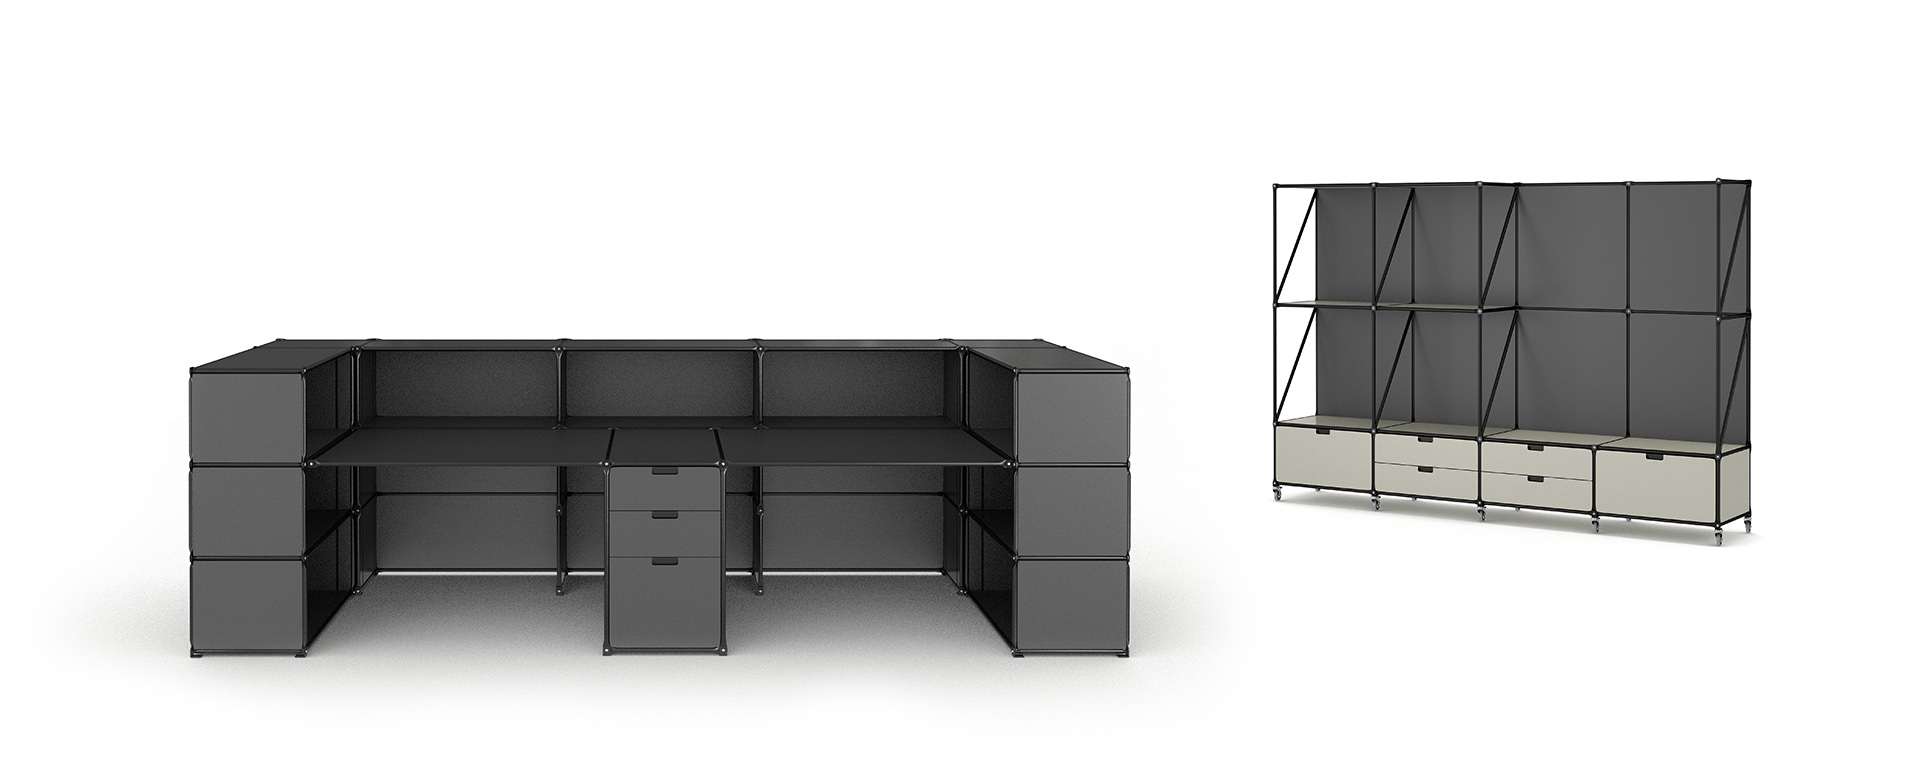 Modulare Regale System 180 Modular Design Made In Berlin